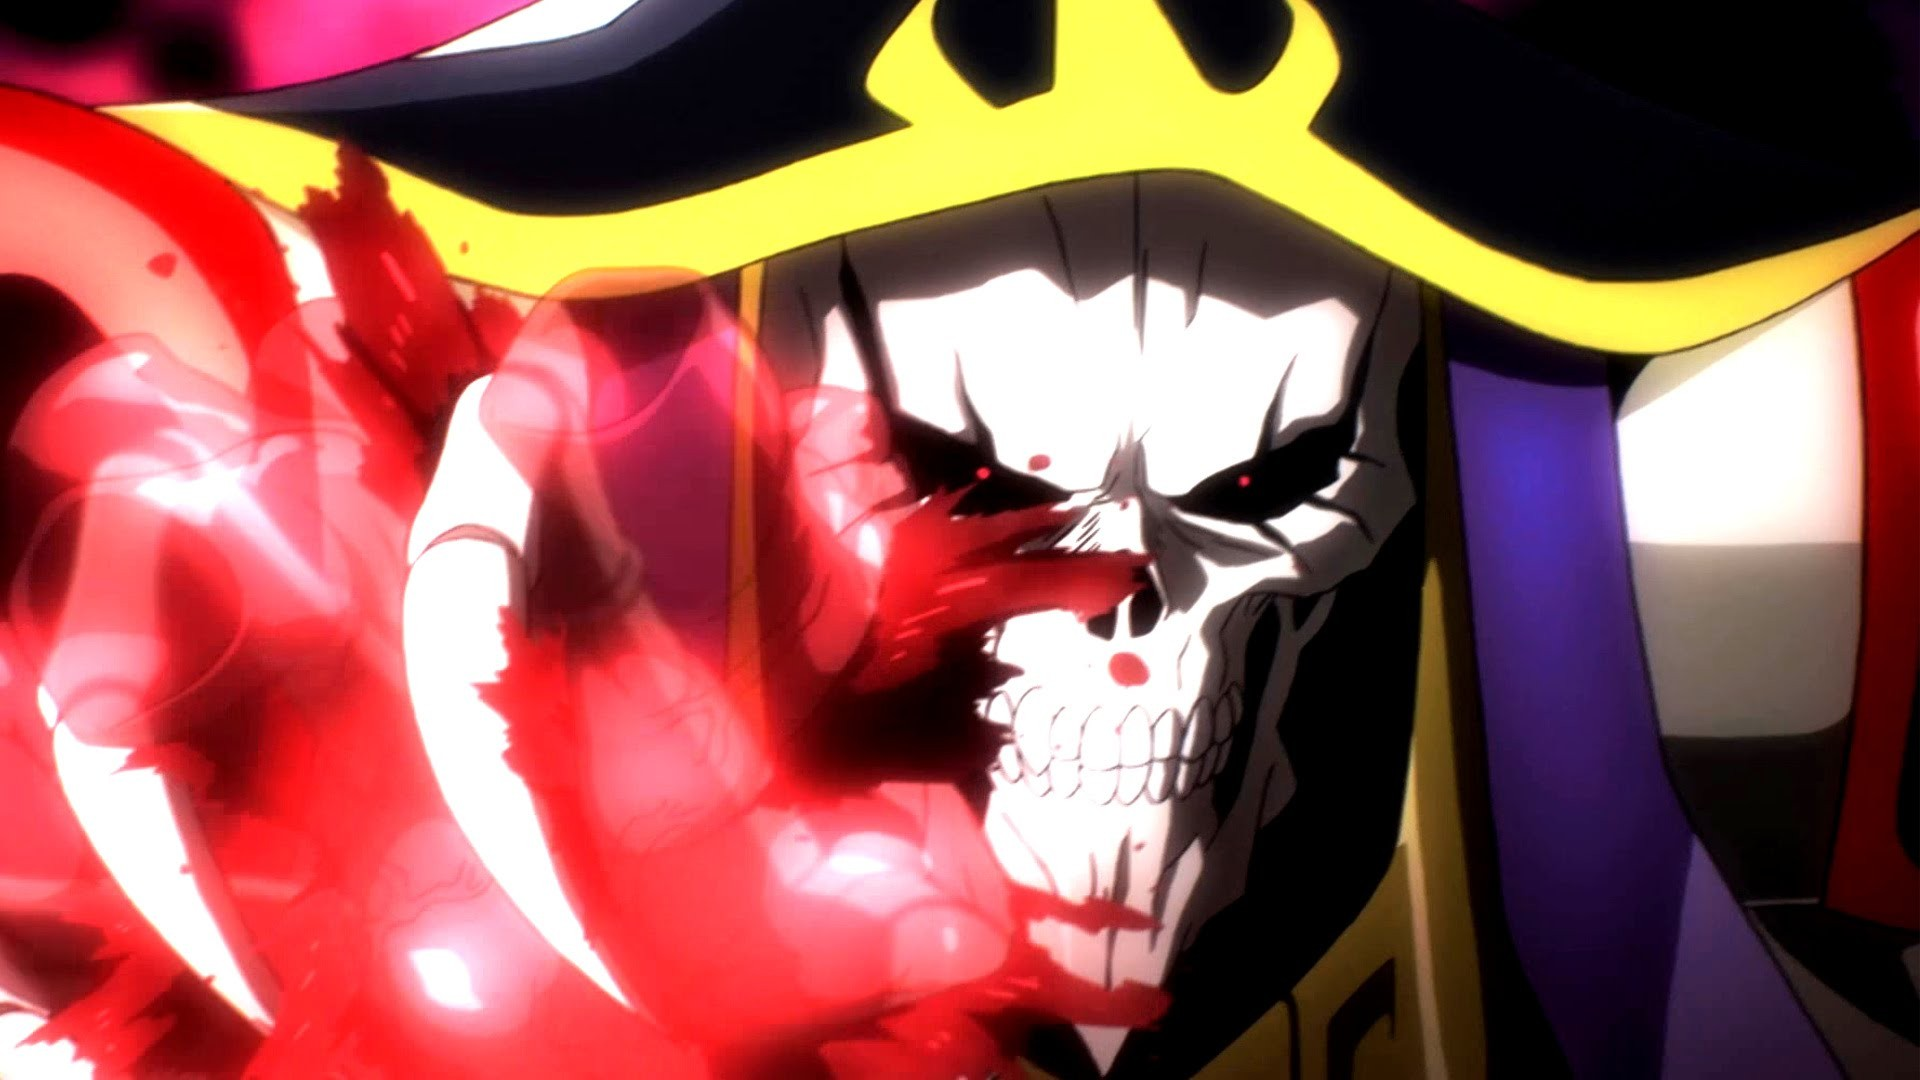 Overlord Anime wallpaper ·① Download free stunning ...